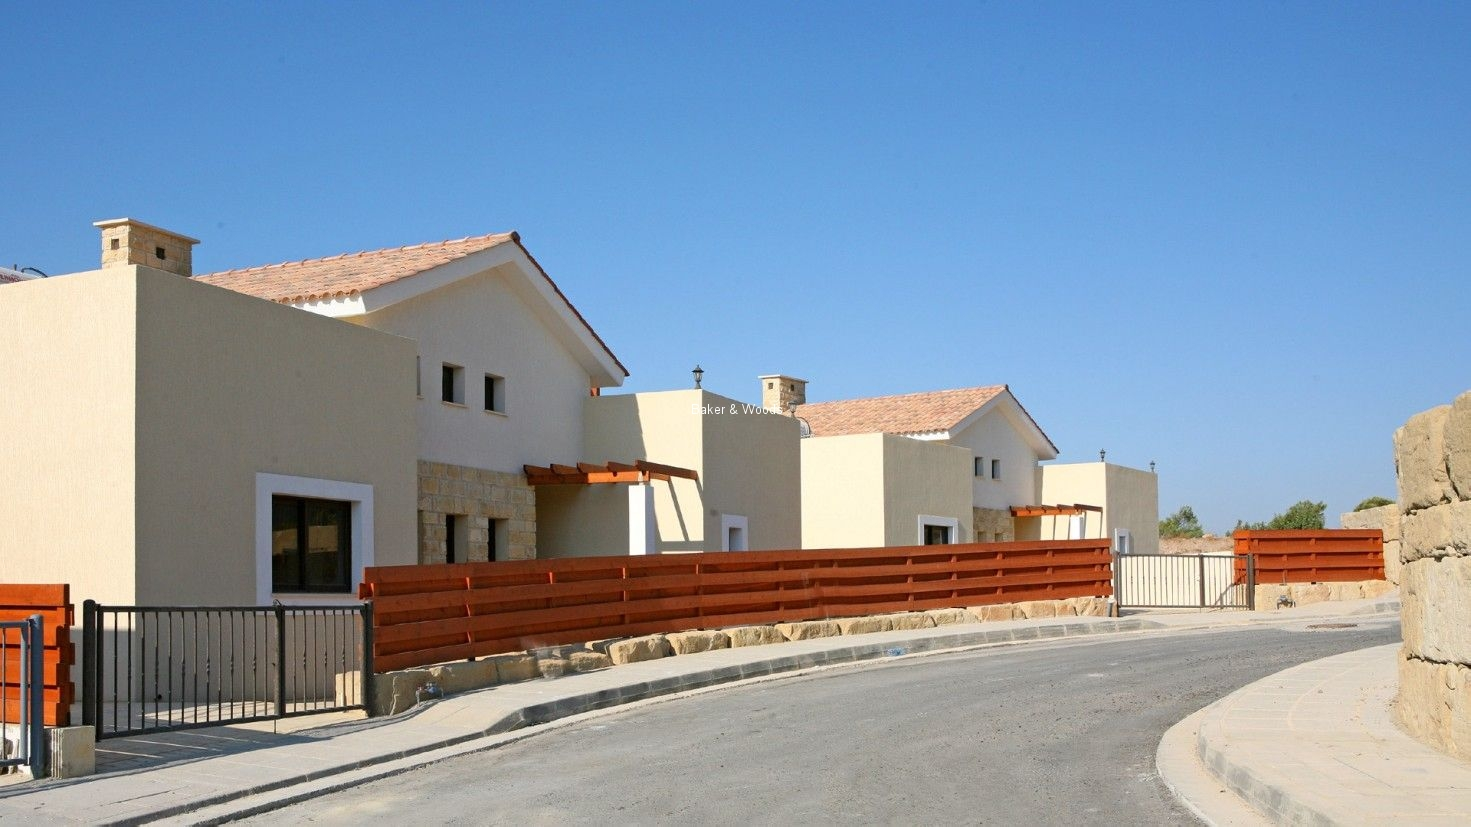 748 15 S0 Monagroulli Hills Real Country Side Villas In Large Plots L7zb